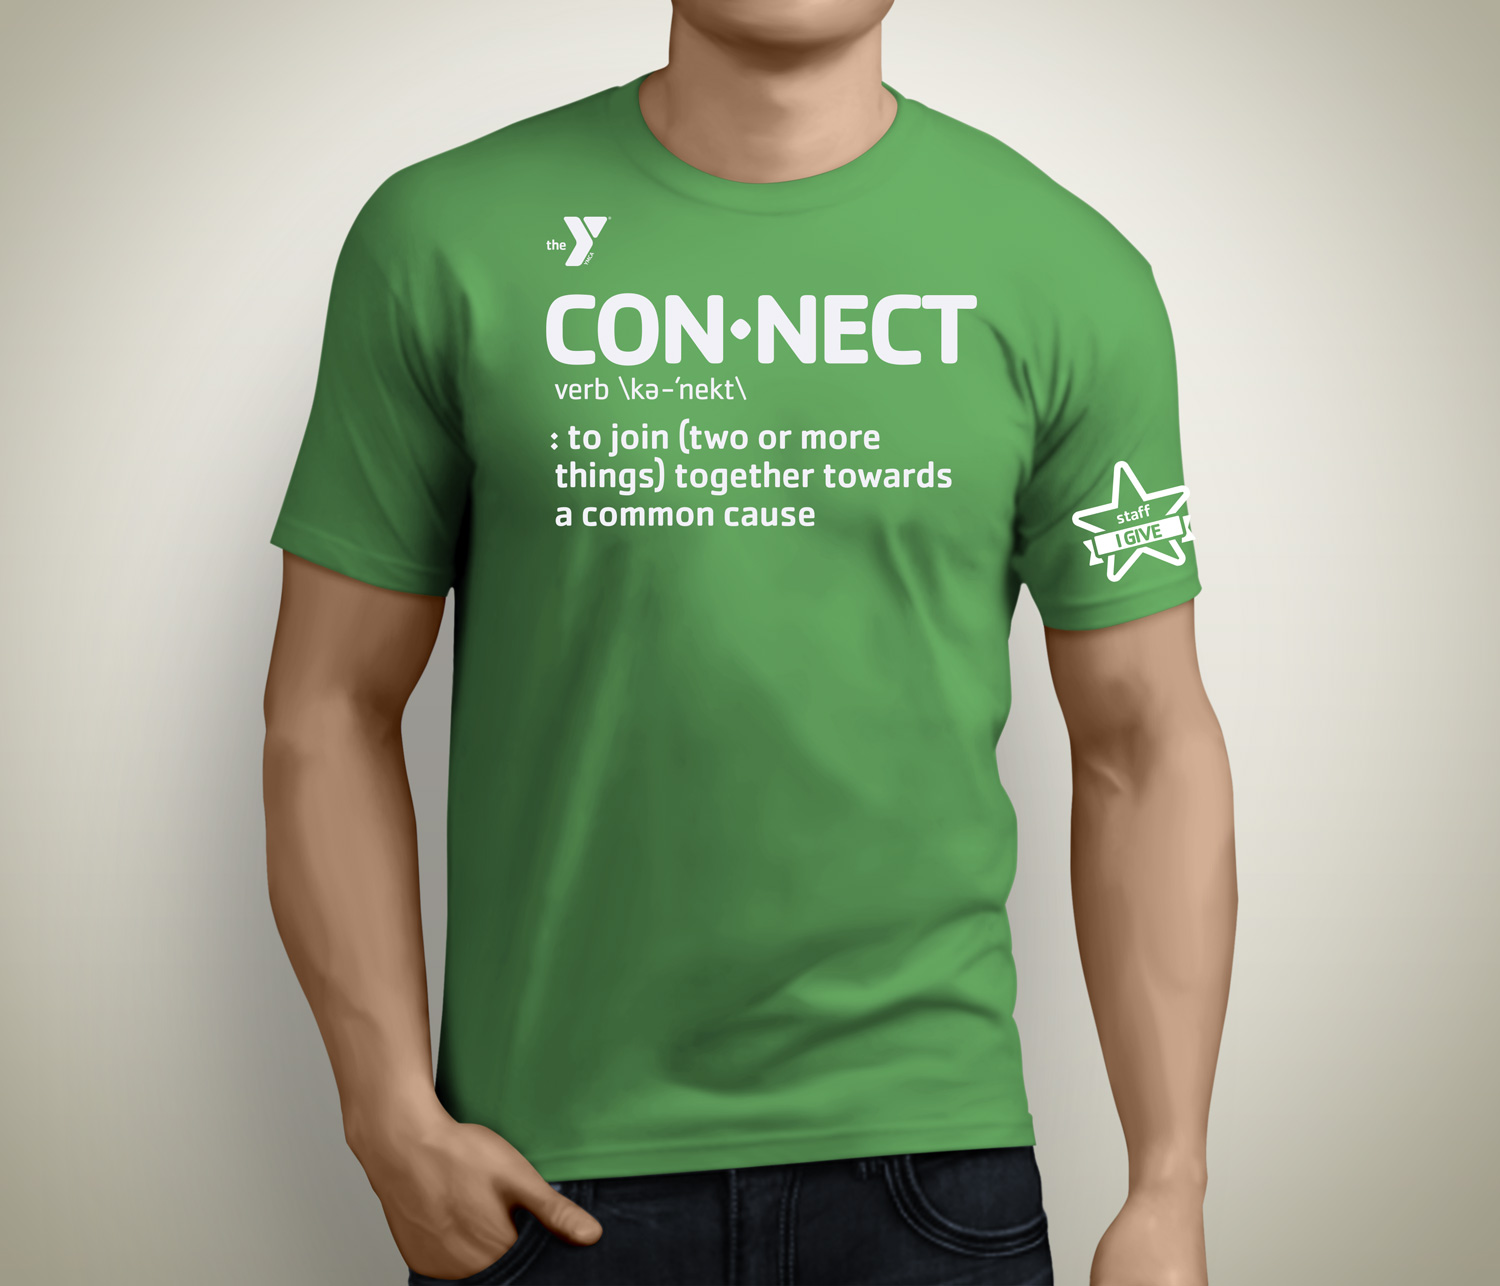 Ymca austin texas custom t shirts one hour tees for One hour t shirts